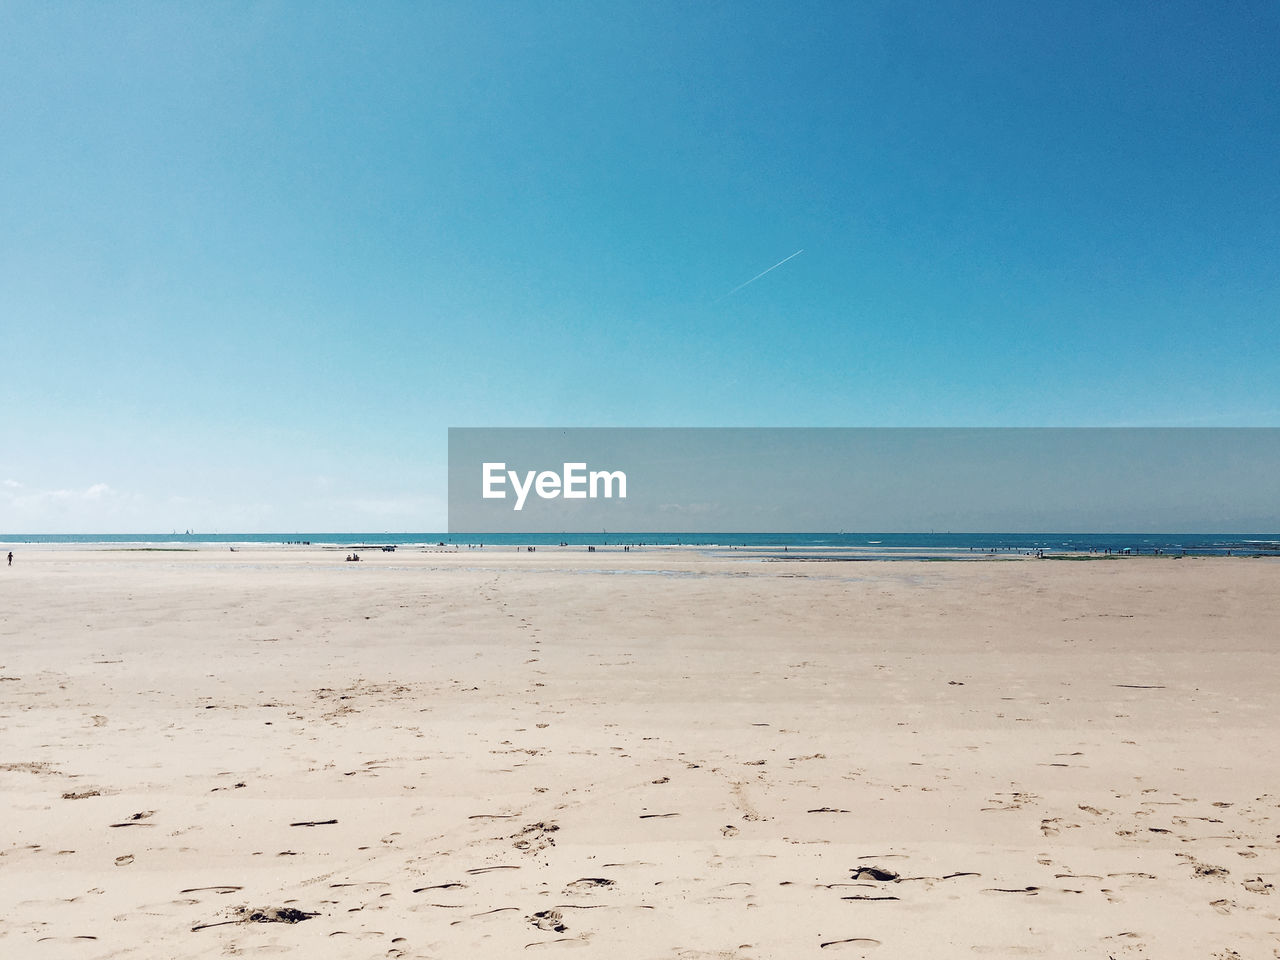 Scenic drone view of beach and ocean against blue sky